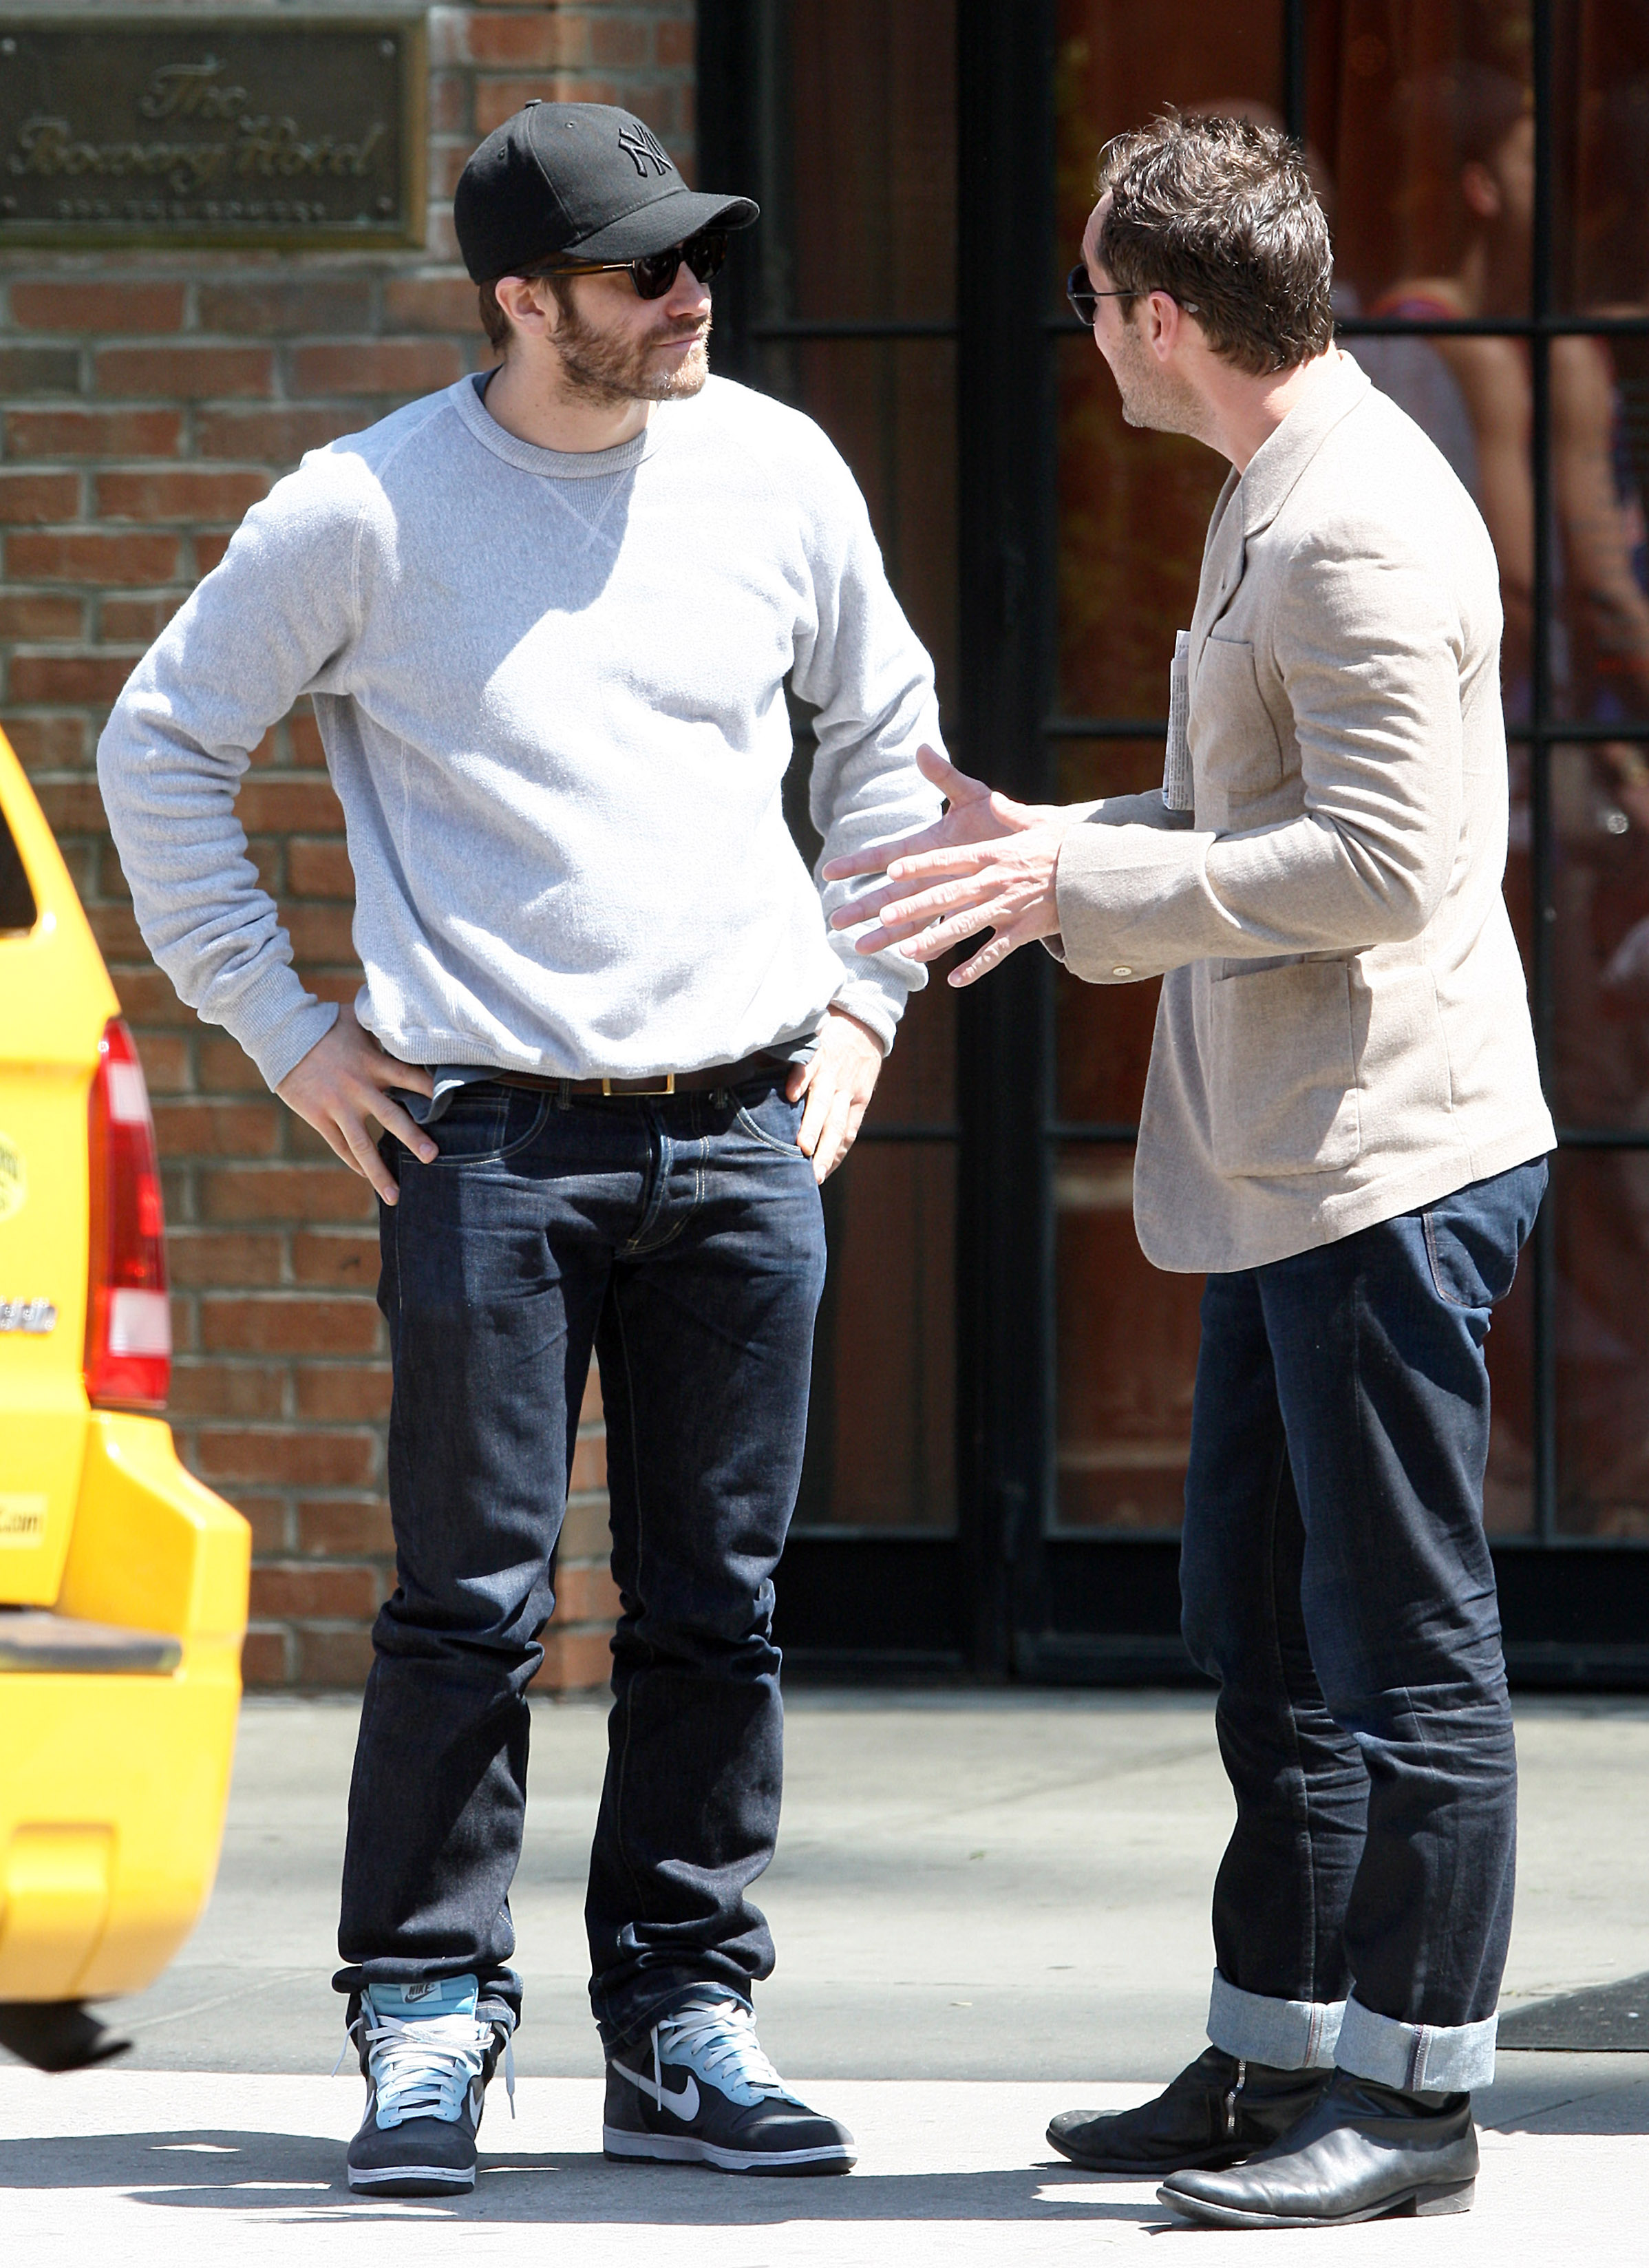 Jake Gyllenhaal and Jude Law chatted in NYC.